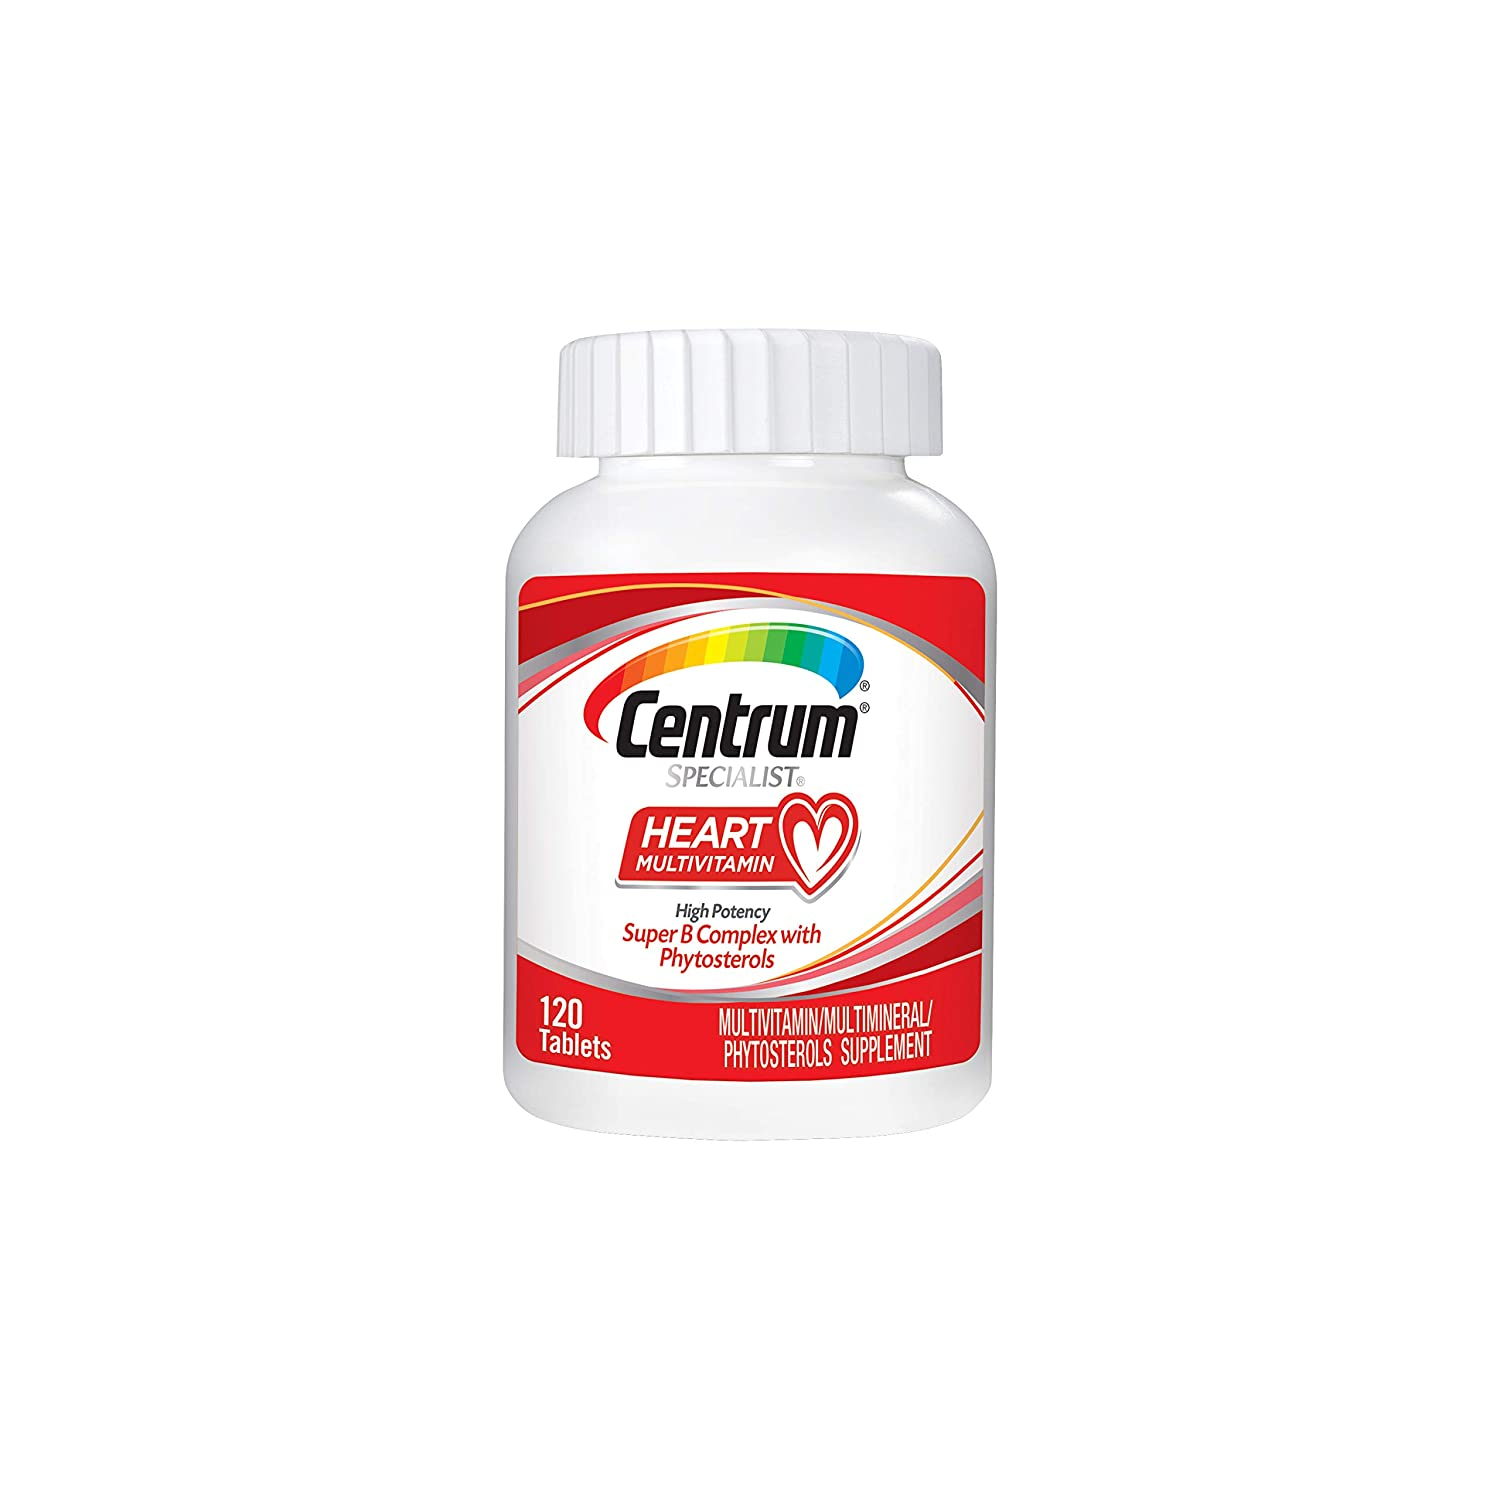 Centrum Specialist Heart Complete Multivitamin Supplement 120Count Tablets